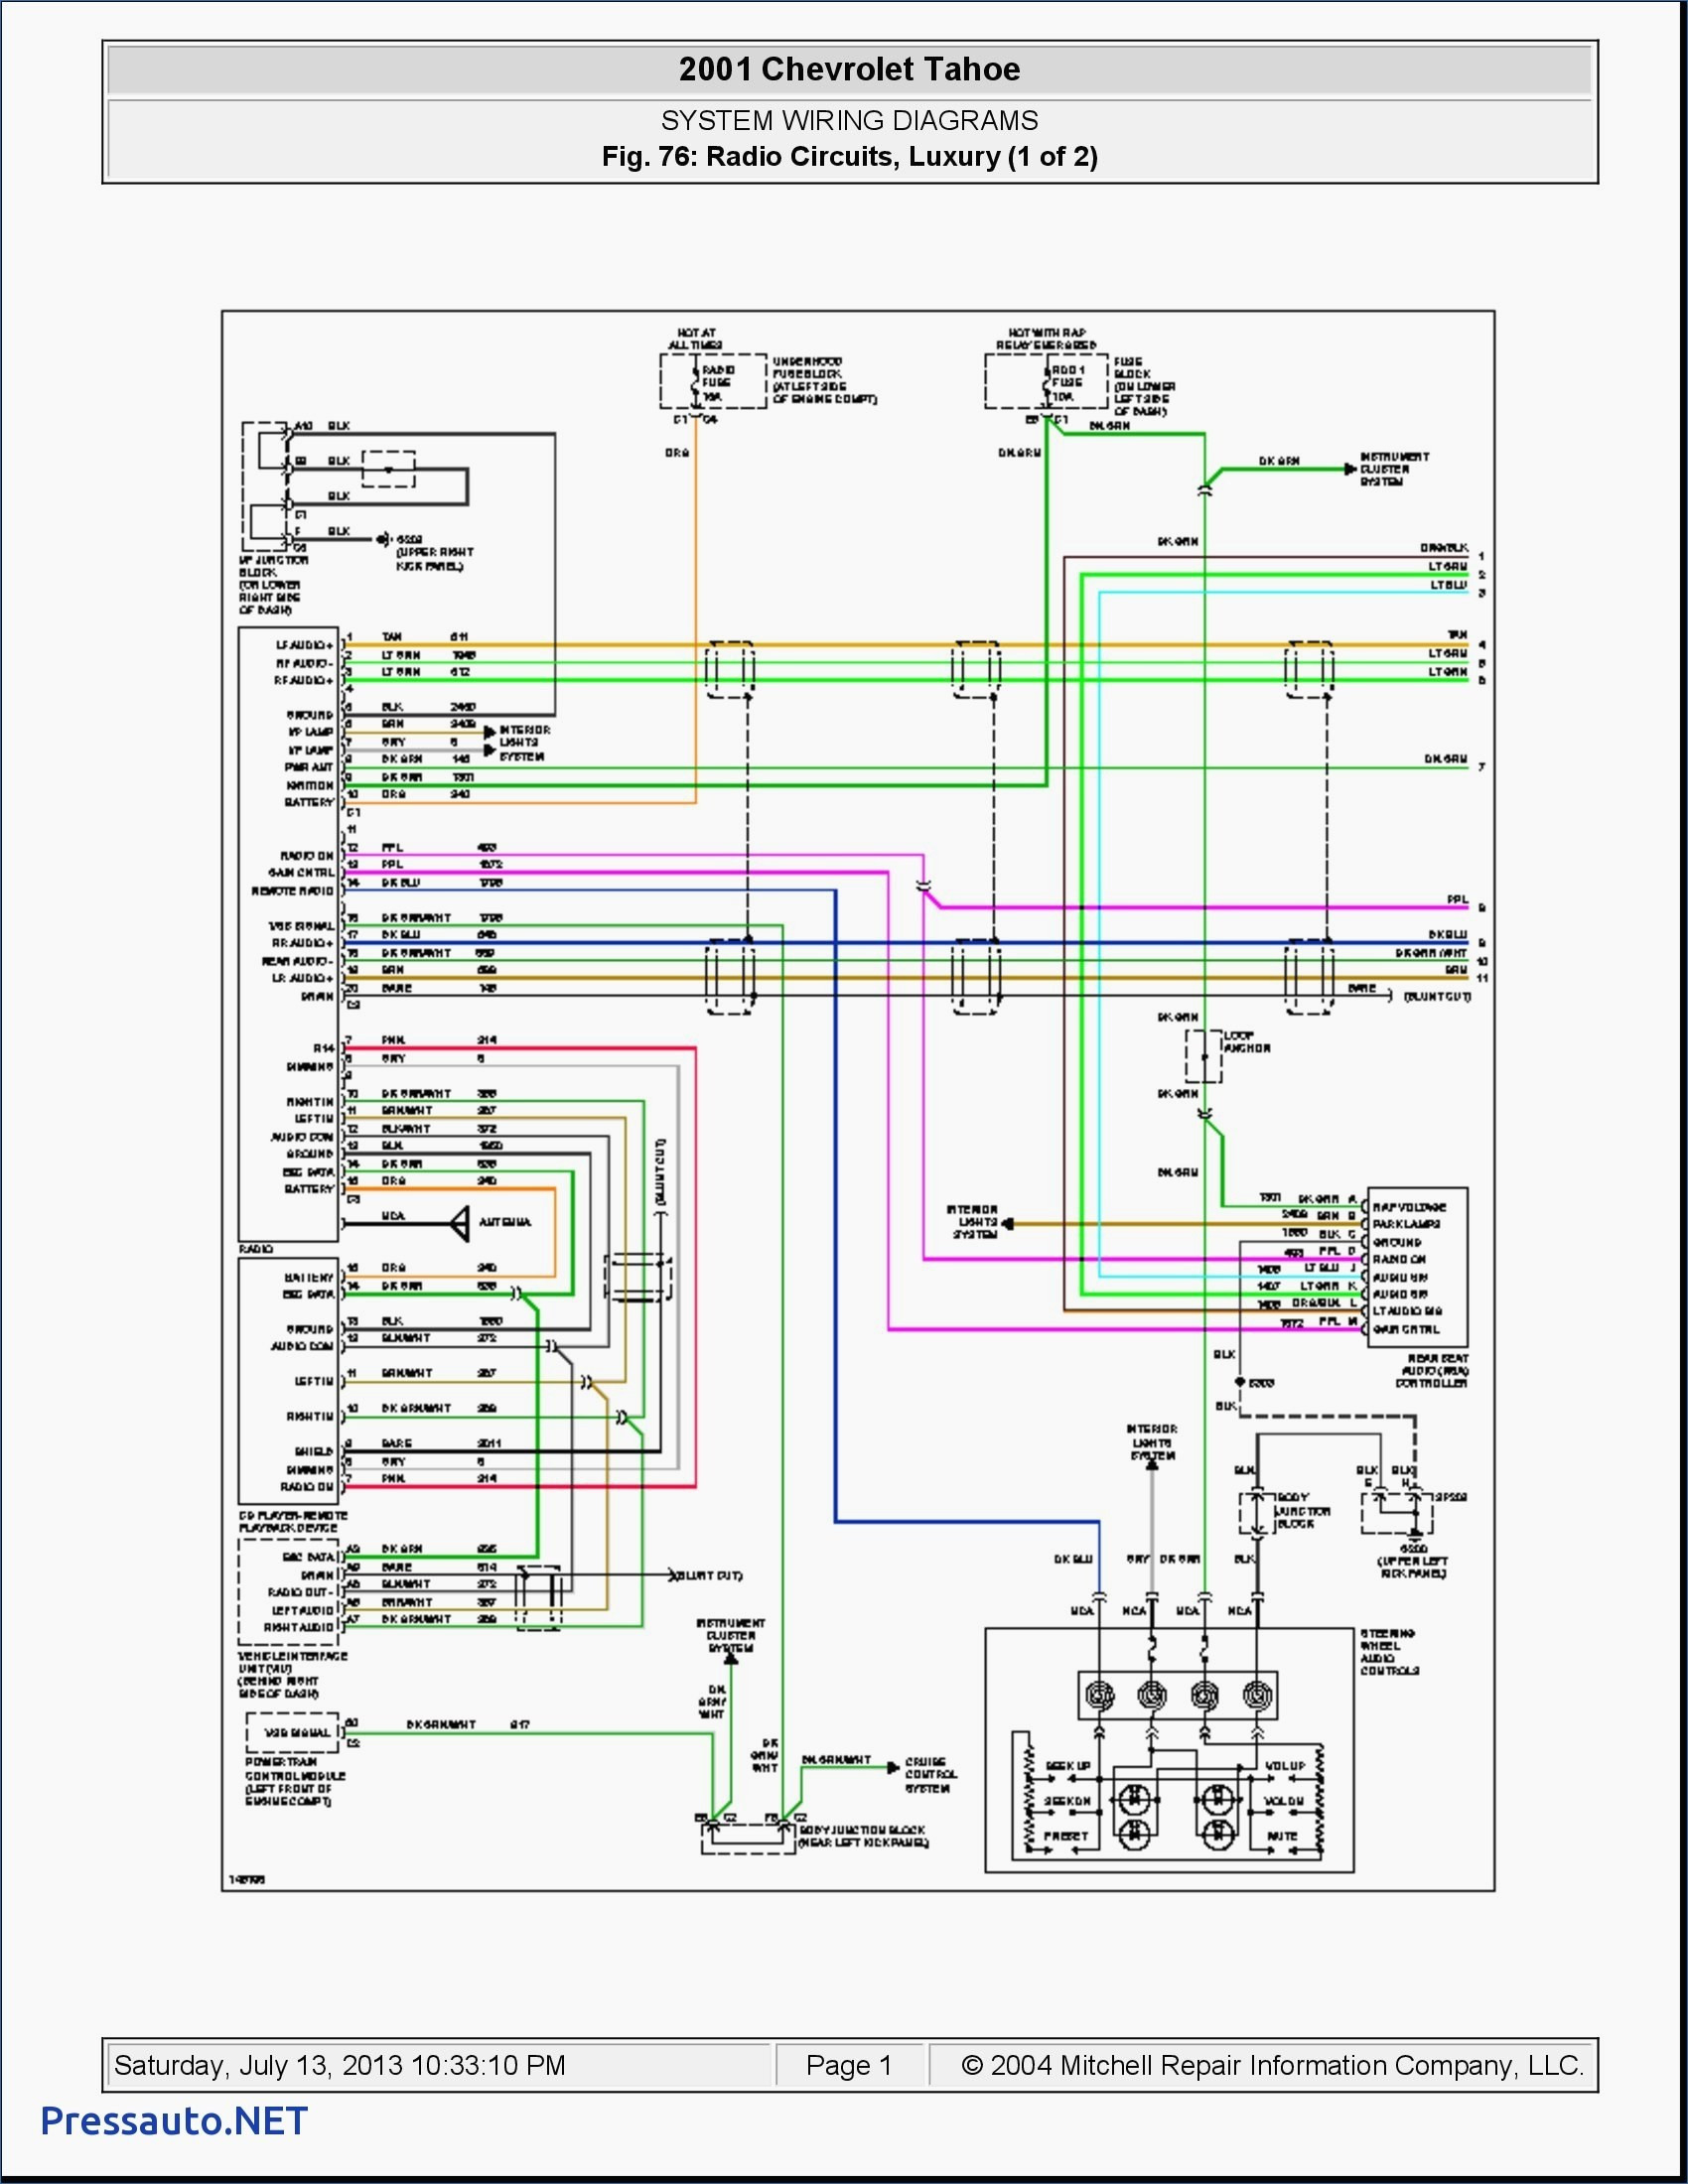 1995 toyota camry radio wiring diagram Download-f150 radio wiring harness diagrams schematics and 1995 ford diagram rh bjzhjy net 1995 chevy tahoe ac wiring diagram 1995 chevy tahoe trailer wiring diagram 2-q